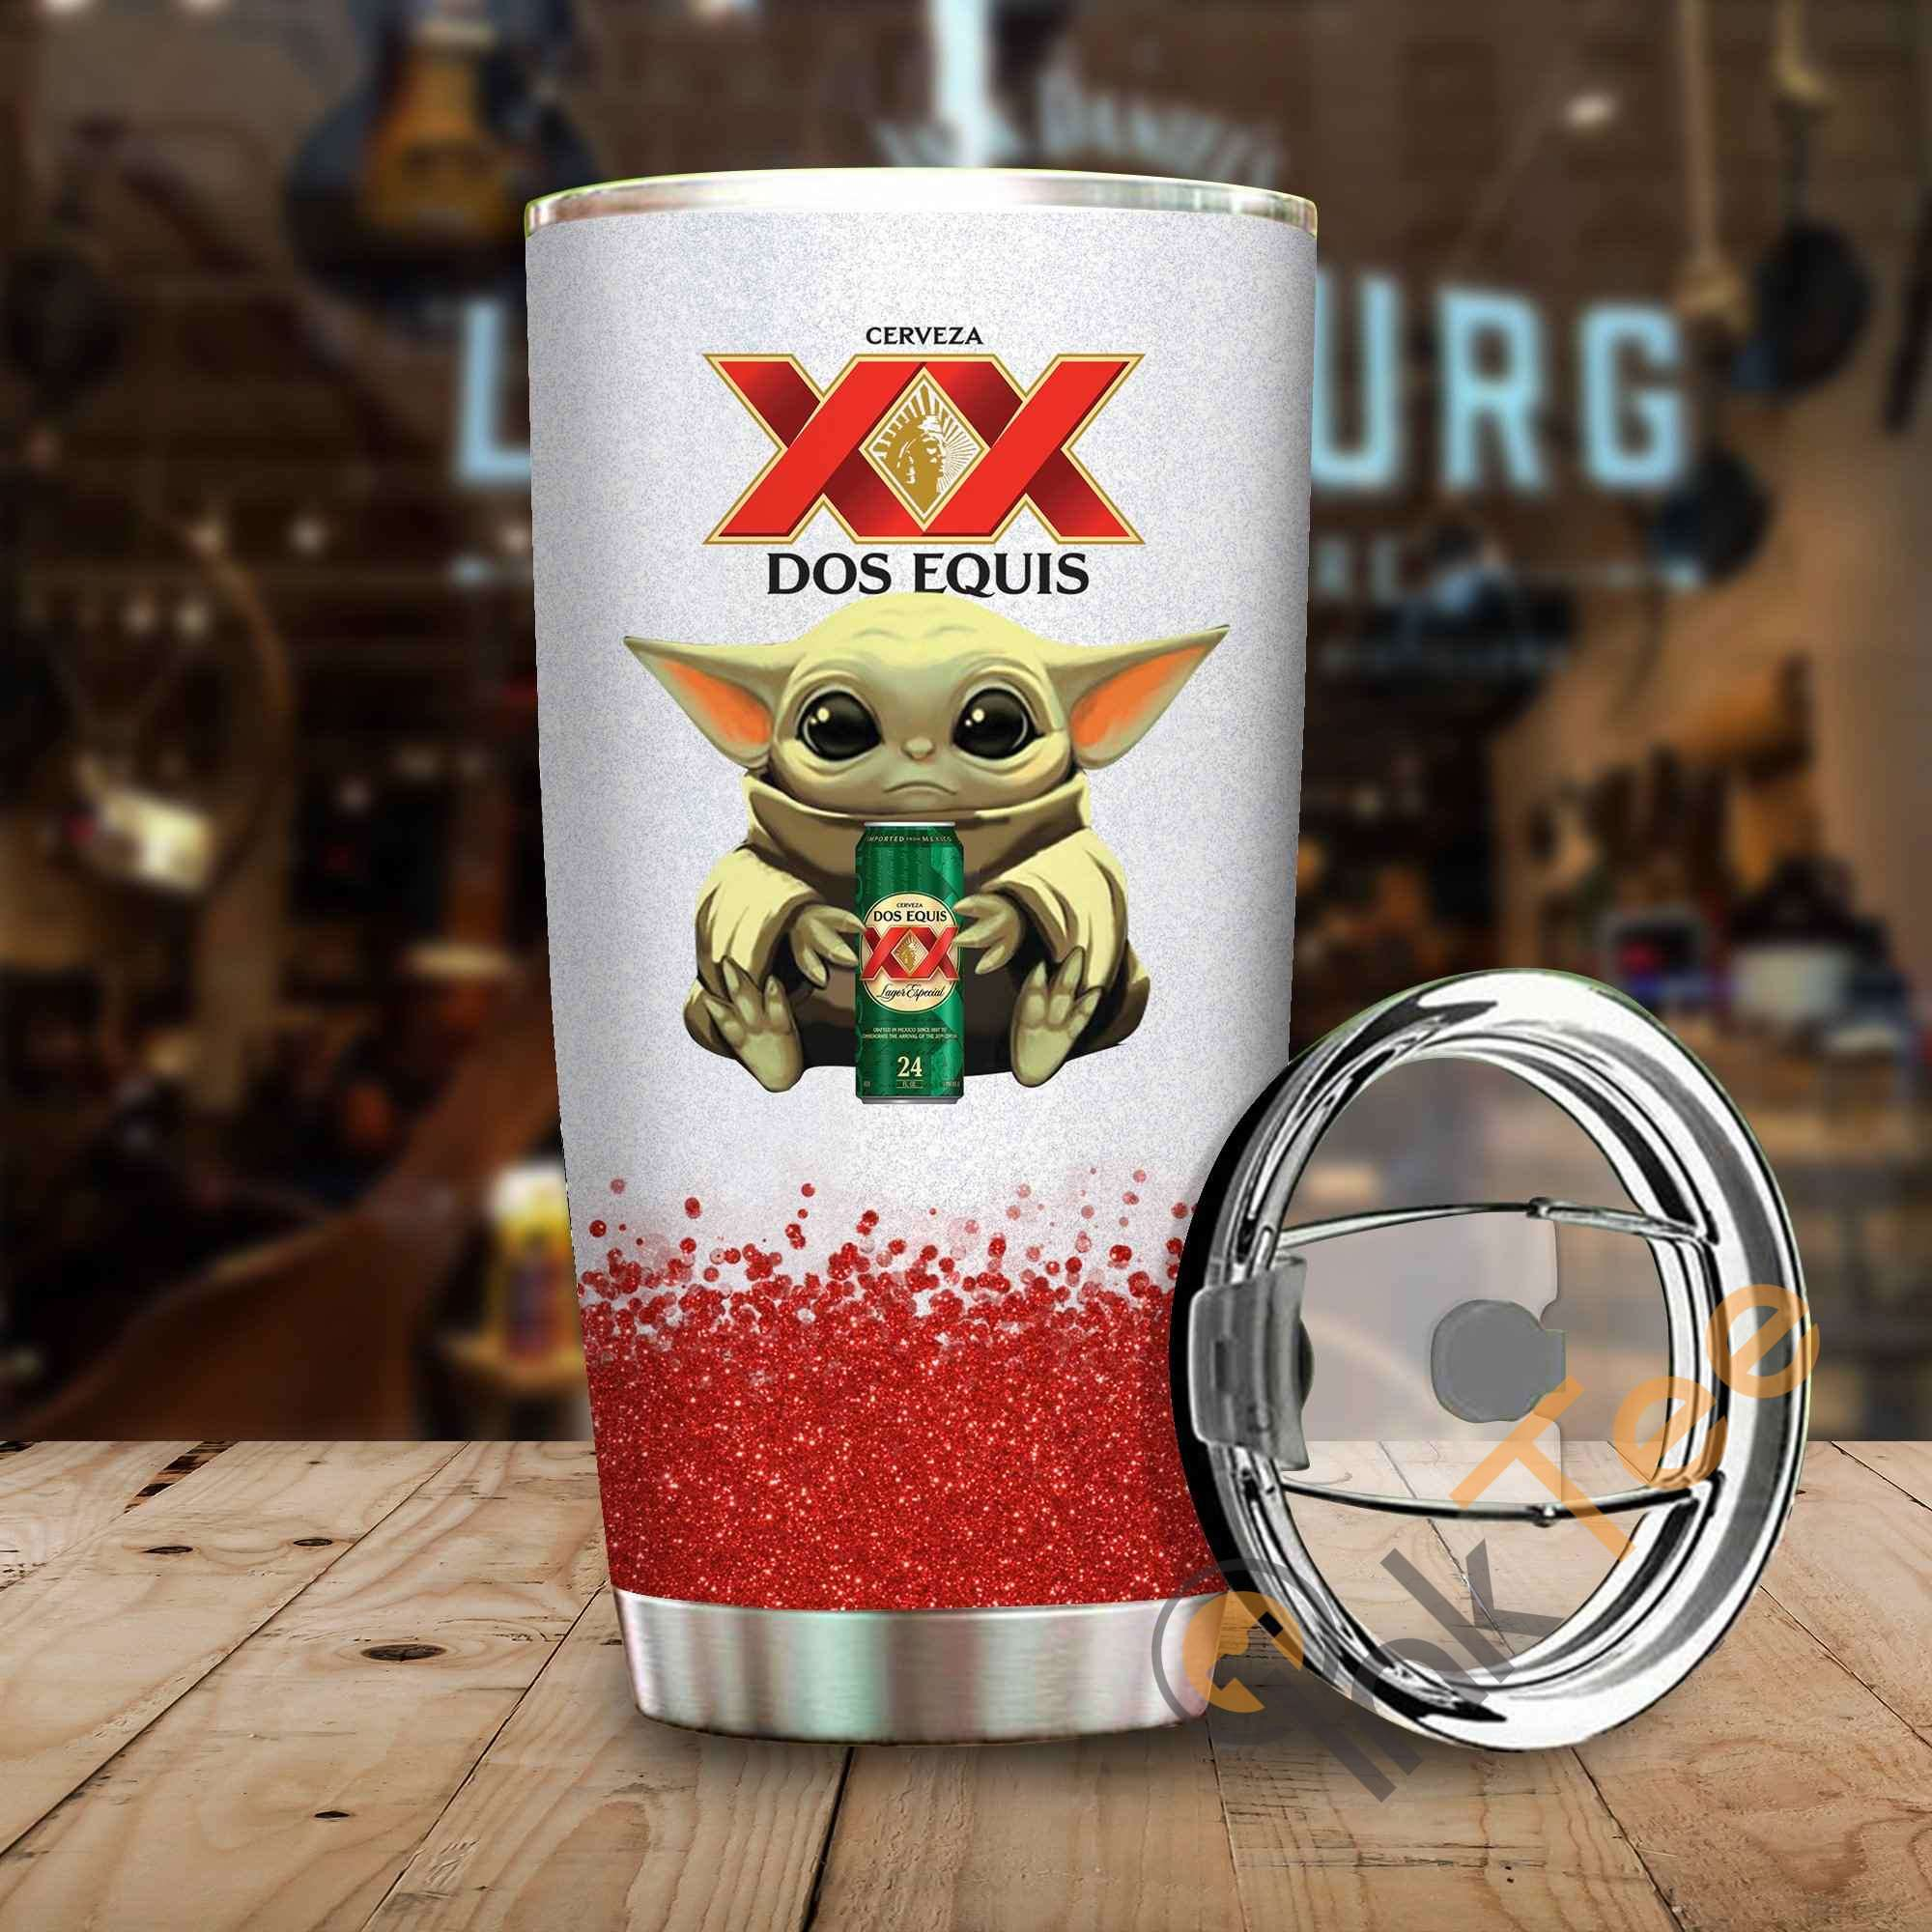 Baby Yoda Hold Dos Equis Amazon Best Seller Sku 3923 Stainless Steel Tumbler